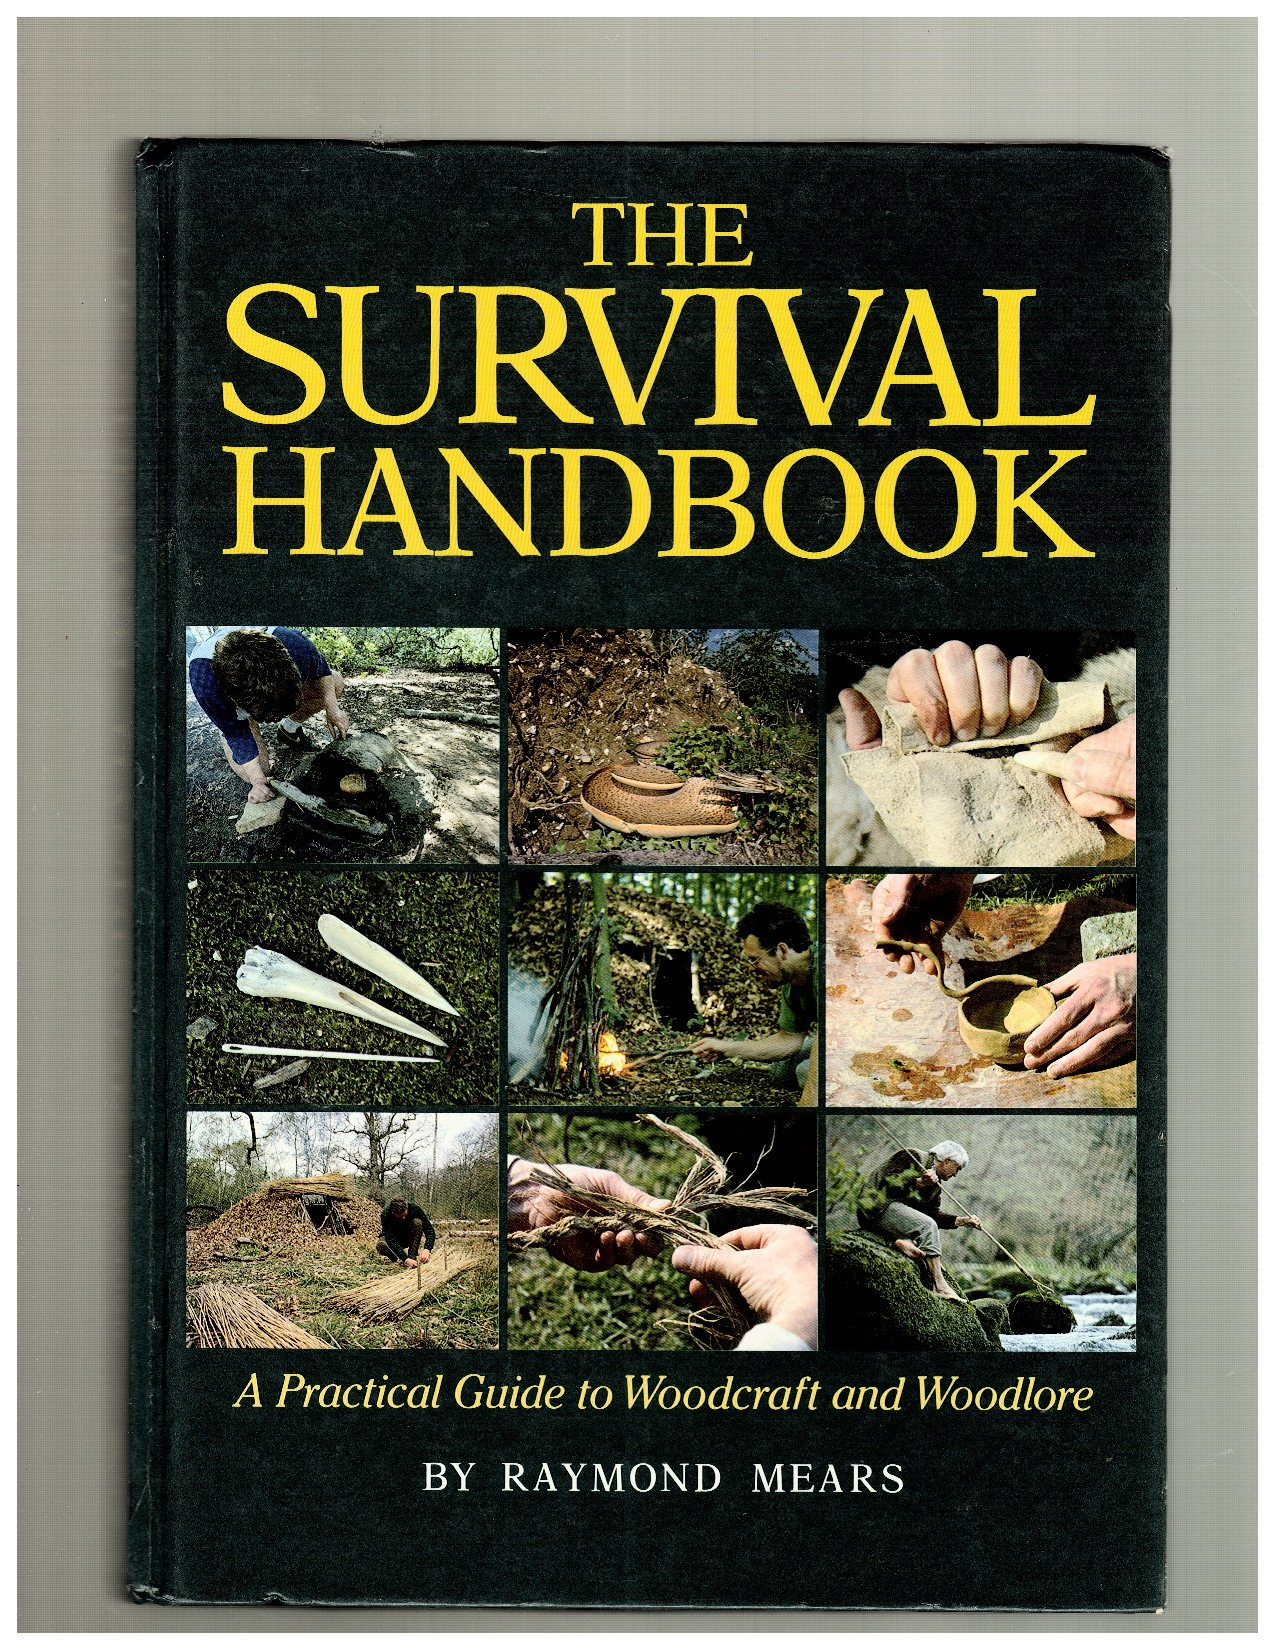 The Survival Handbook: Practical Guide to Woodcraft and Woodlore